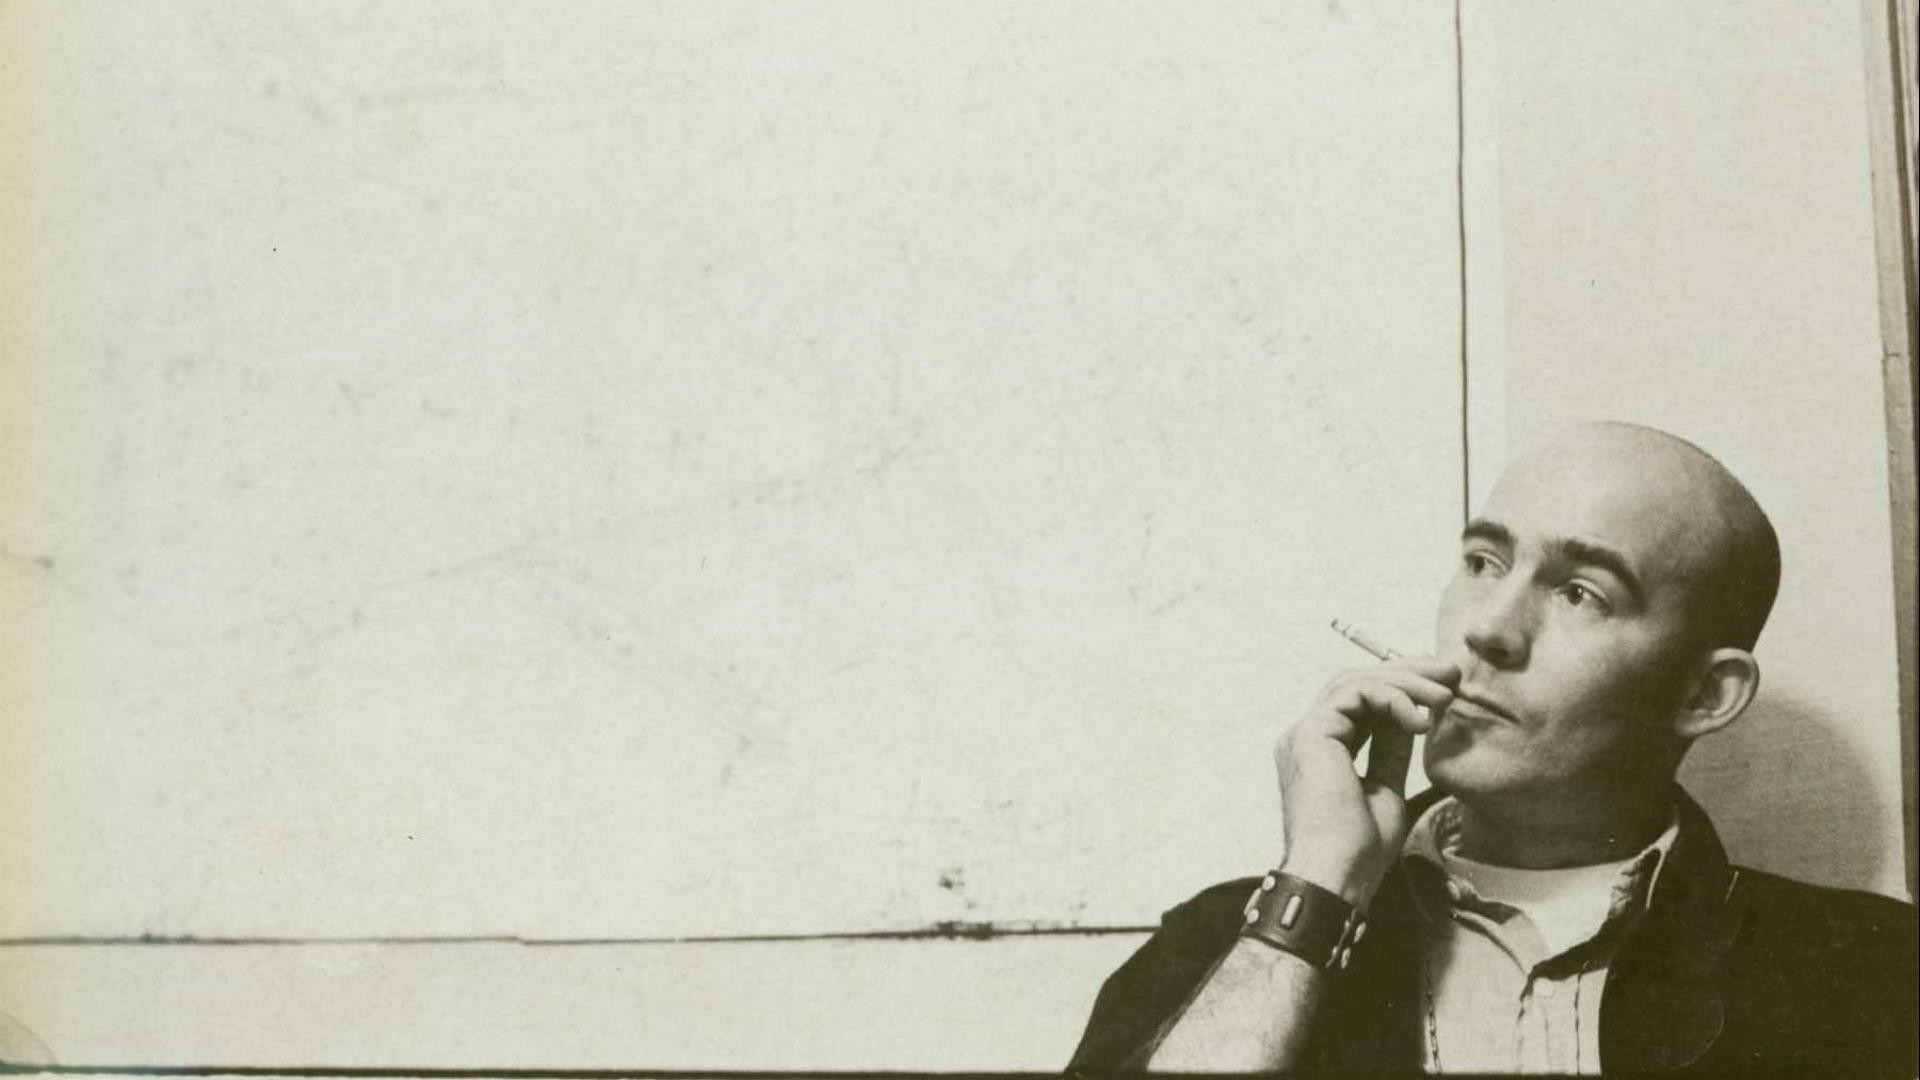 1920x1080 Wallpapers | Hunter S. Thompson